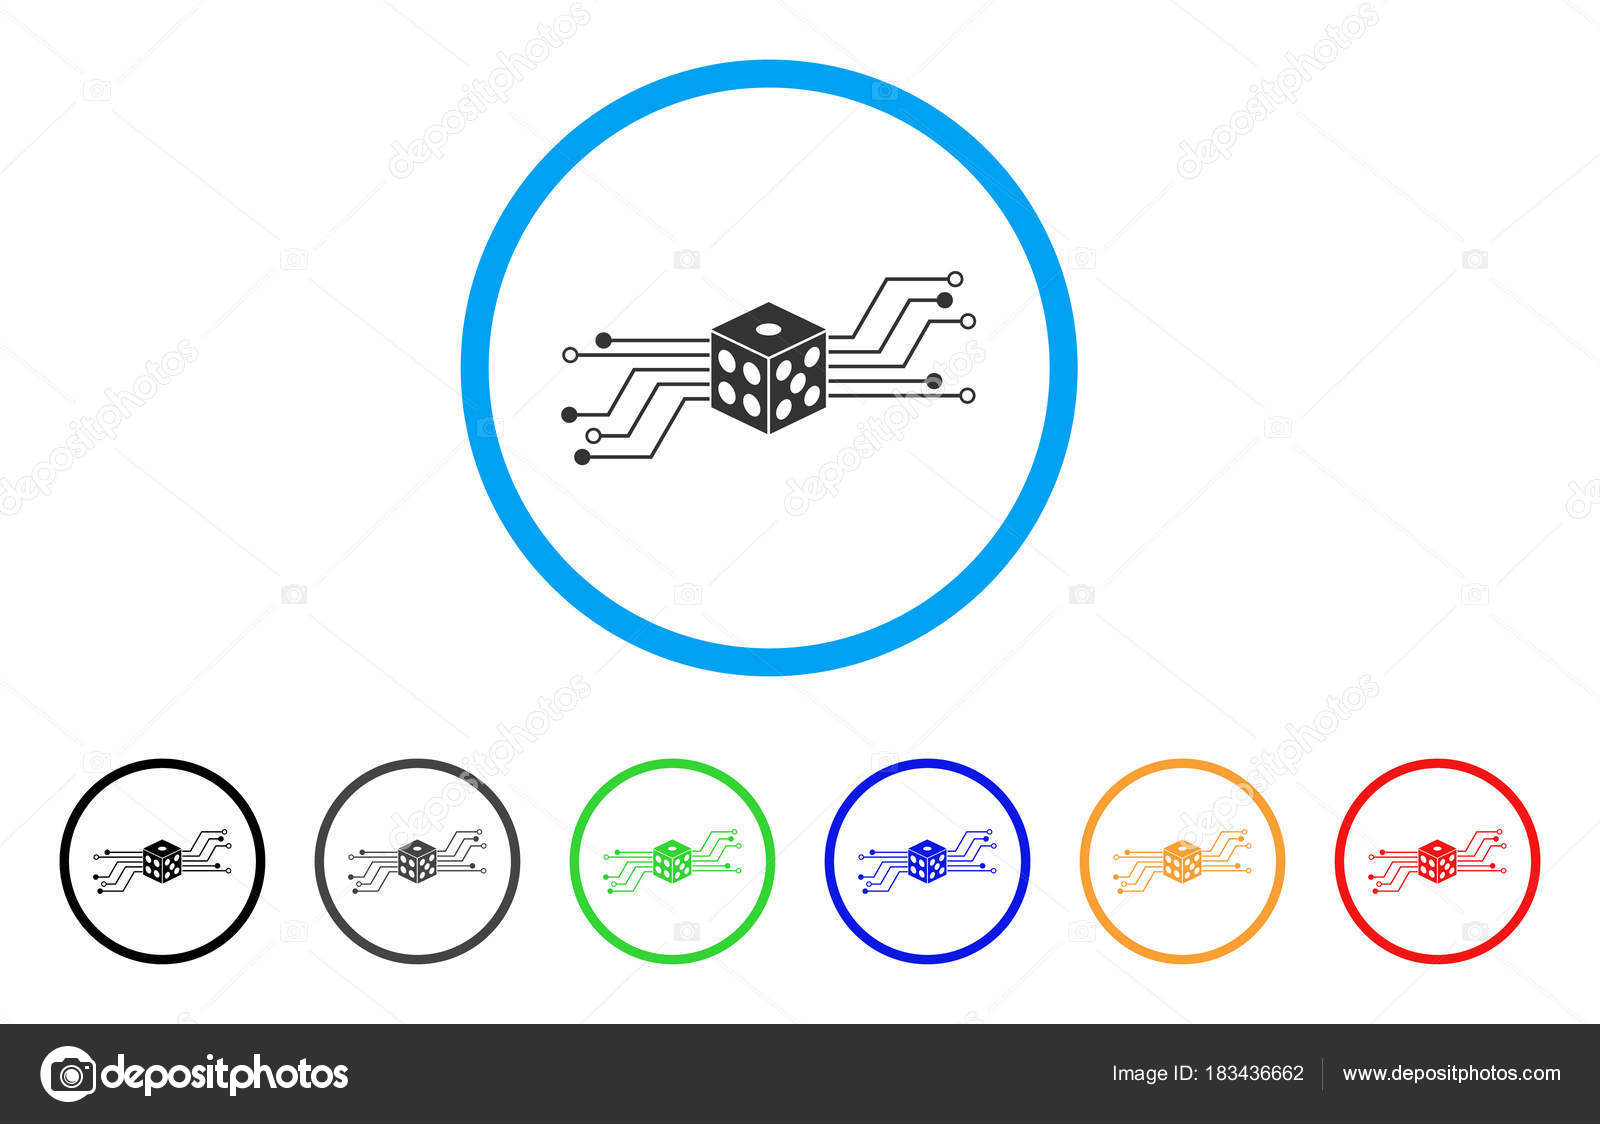 Modern Electronic Dice Circuit Sketch Electrical Diagram Ideas Digital Vector Icon Stock Ahasoft 183436662